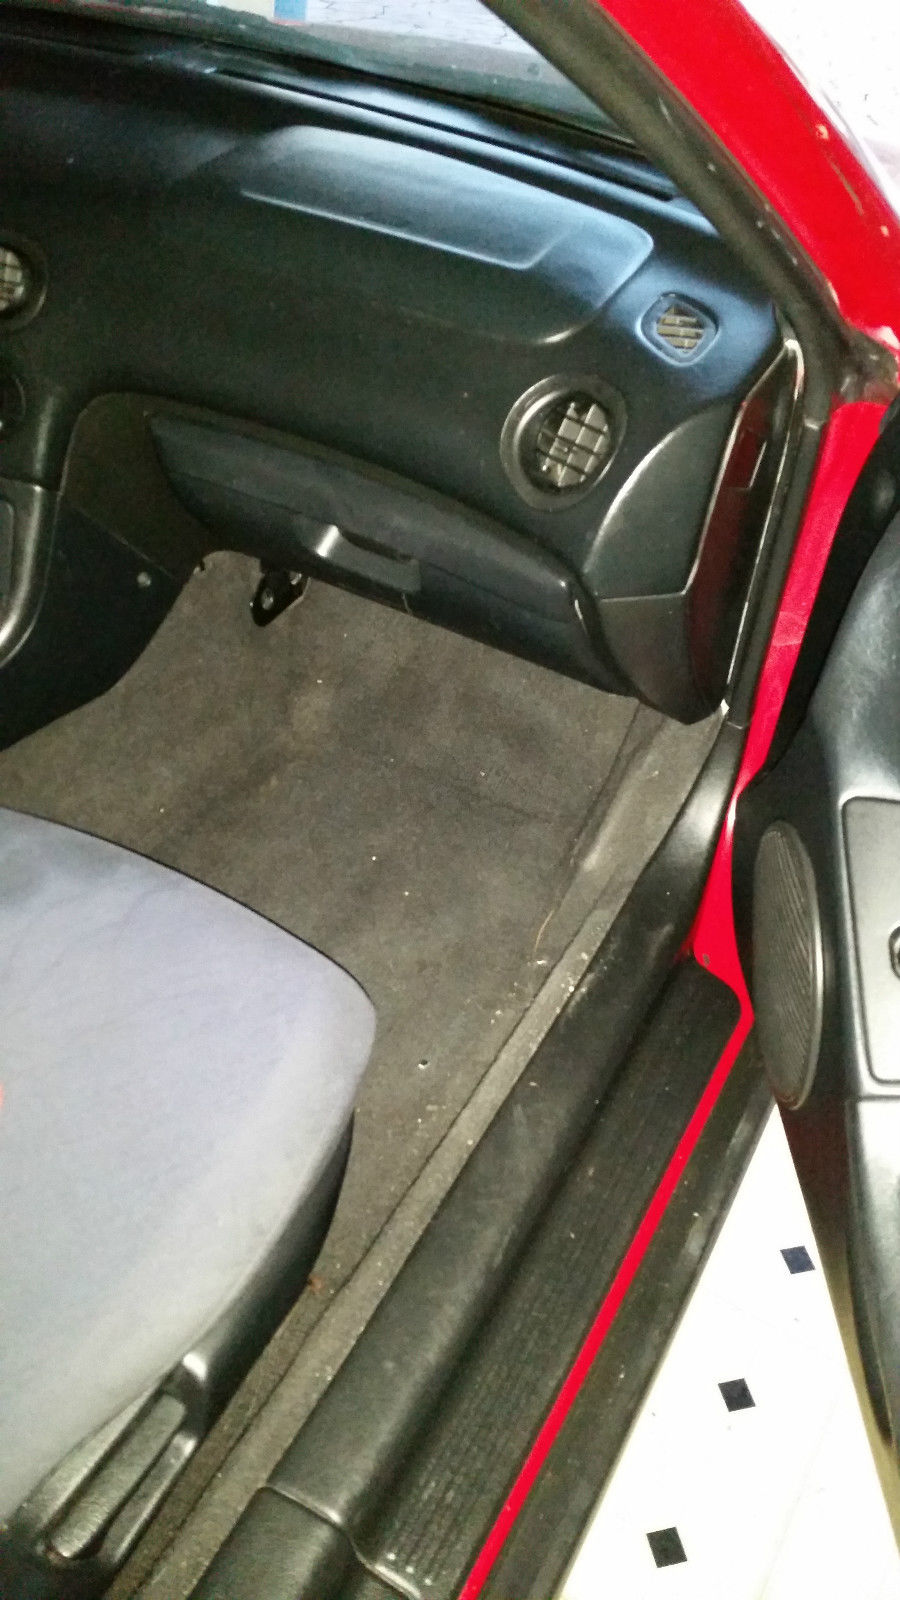 94 honda del sol convertible civic 2dr coupe no rust great stock car wont start for sale in fort. Black Bedroom Furniture Sets. Home Design Ideas